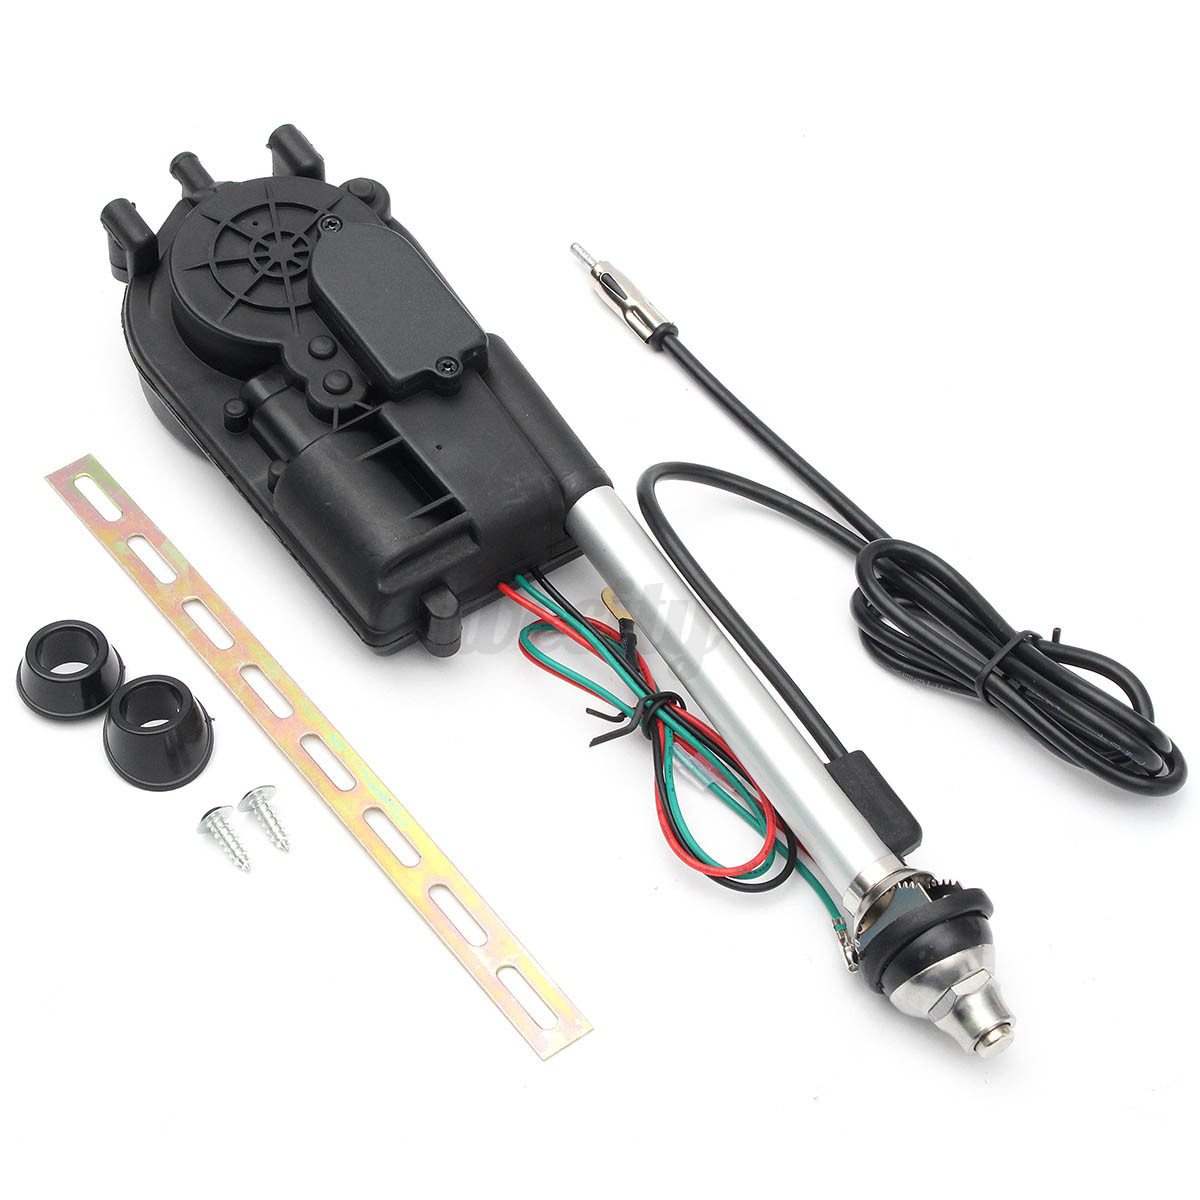 Radio Shack Electric Motor Kit: Universal Auto Car Power Electric Aerial Automatic Antenna